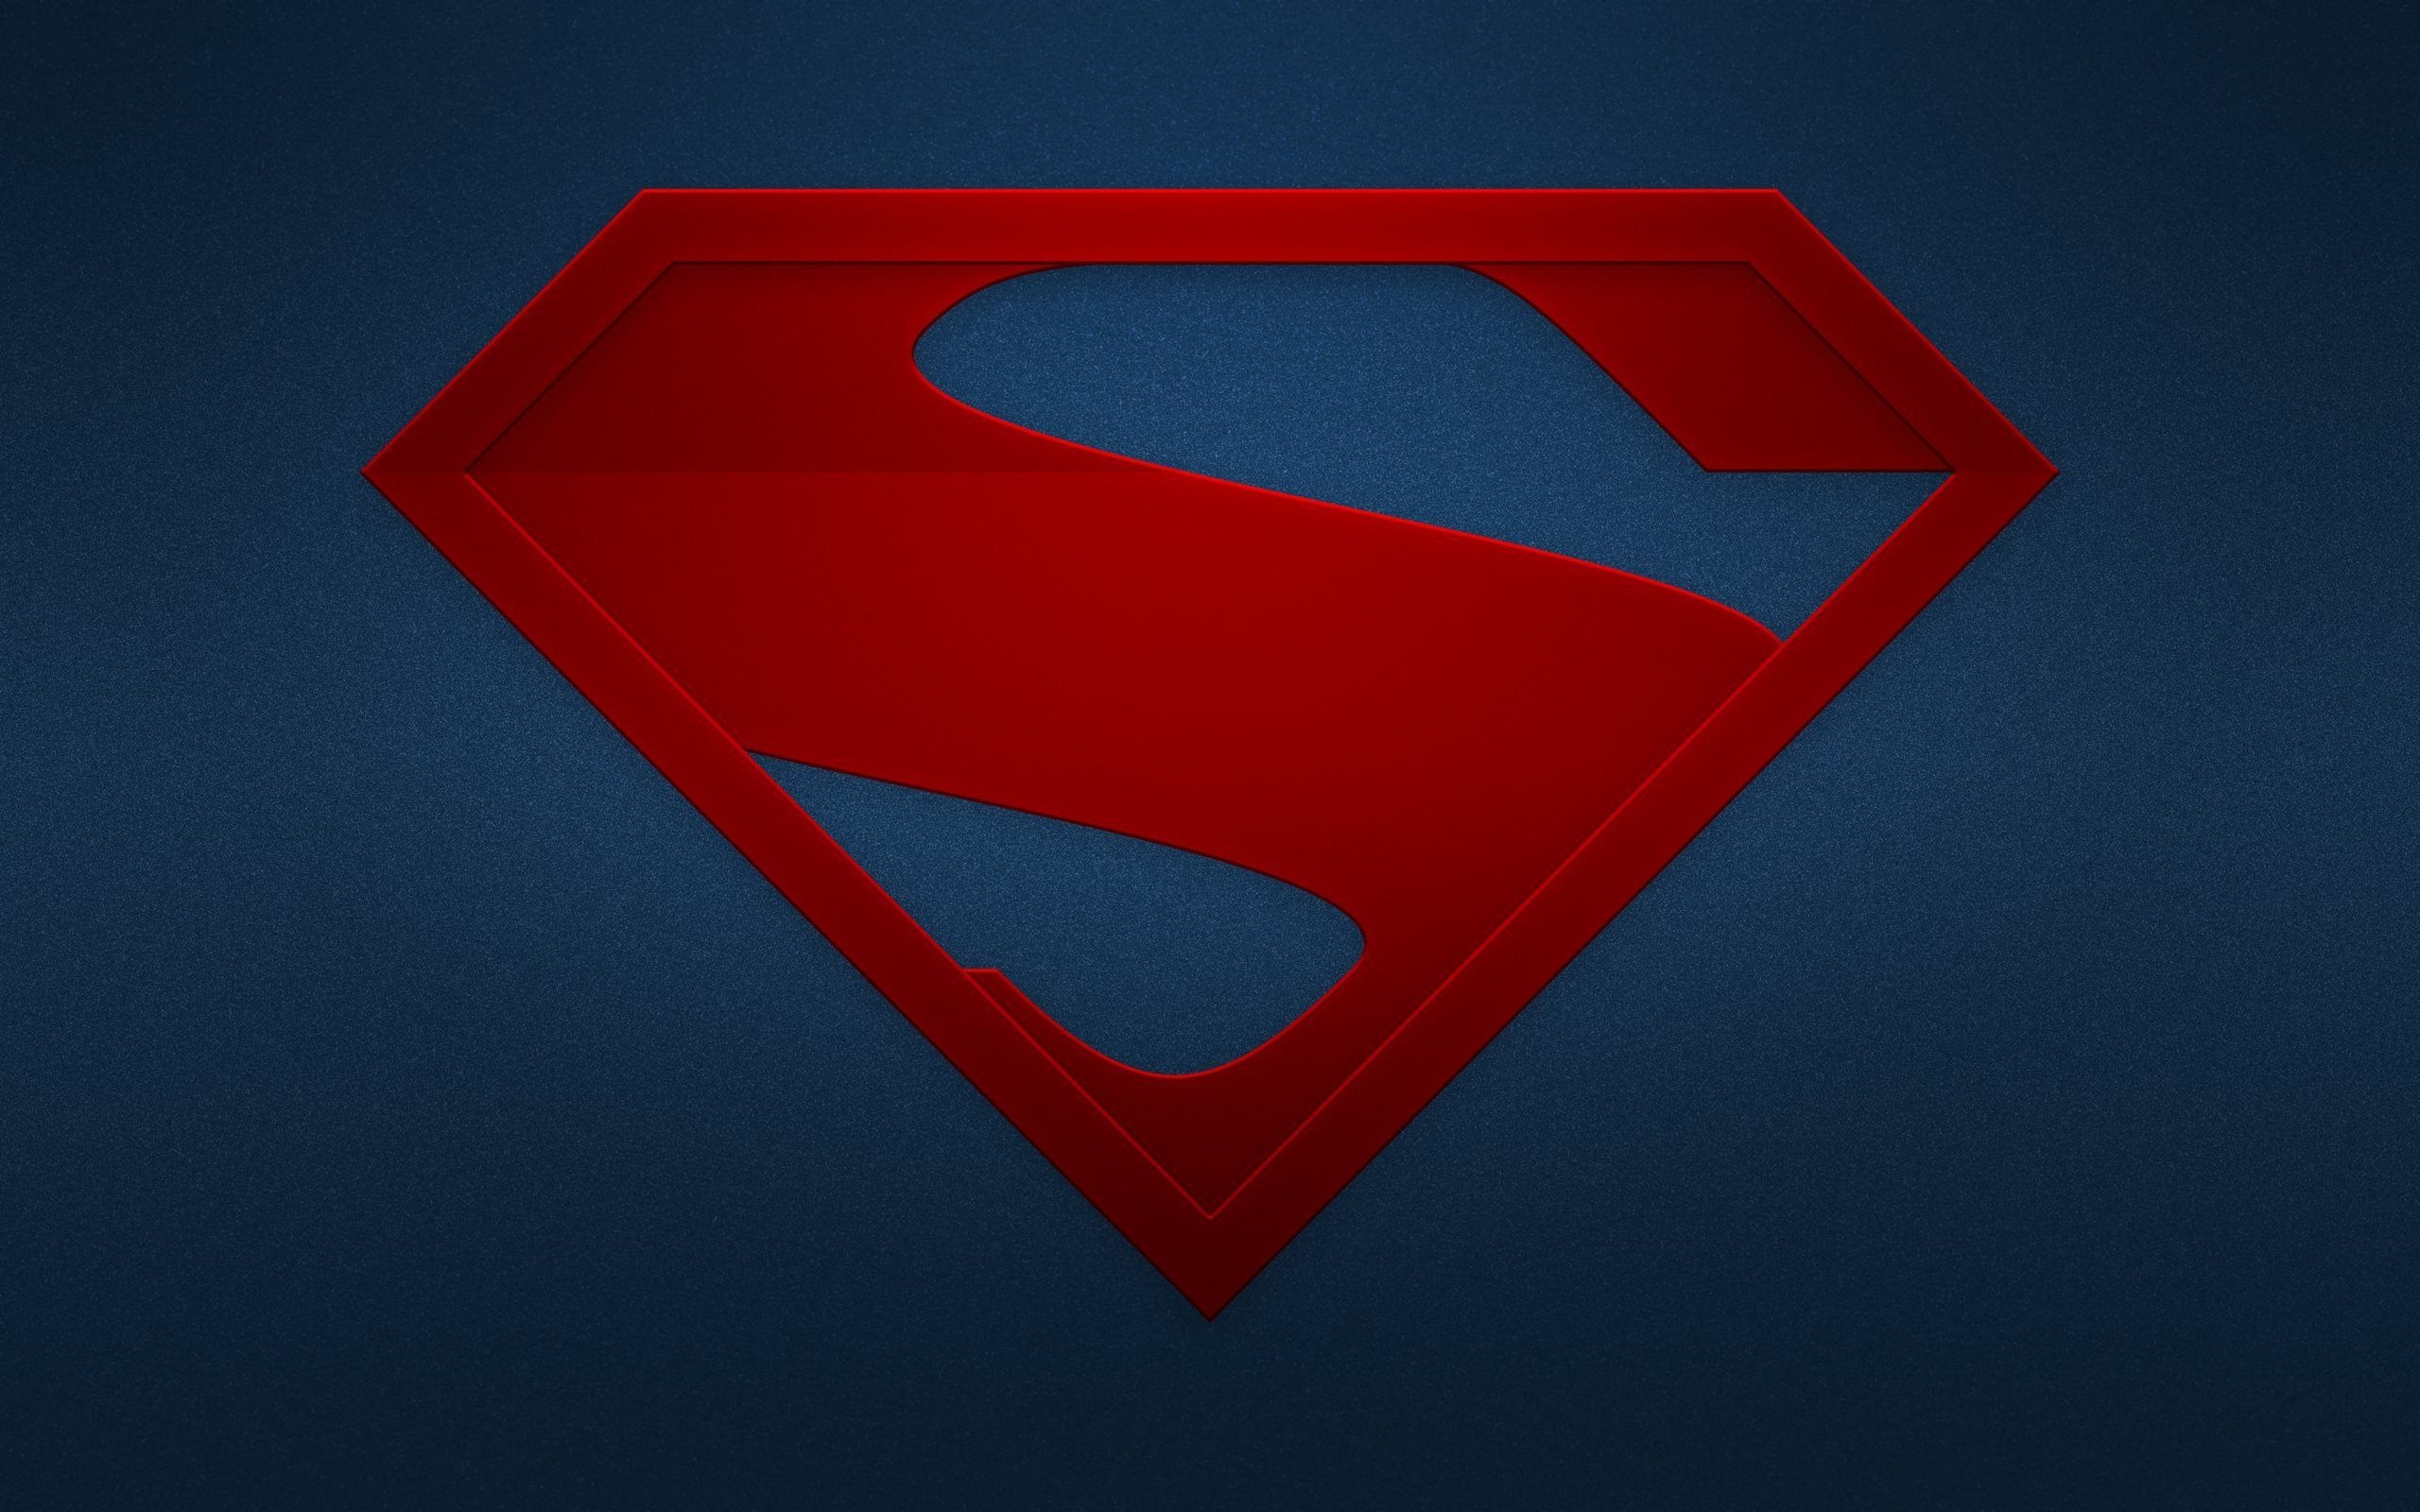 4k superhero wallpapers wallpapersafari - Superhero iphone wallpaper hd ...